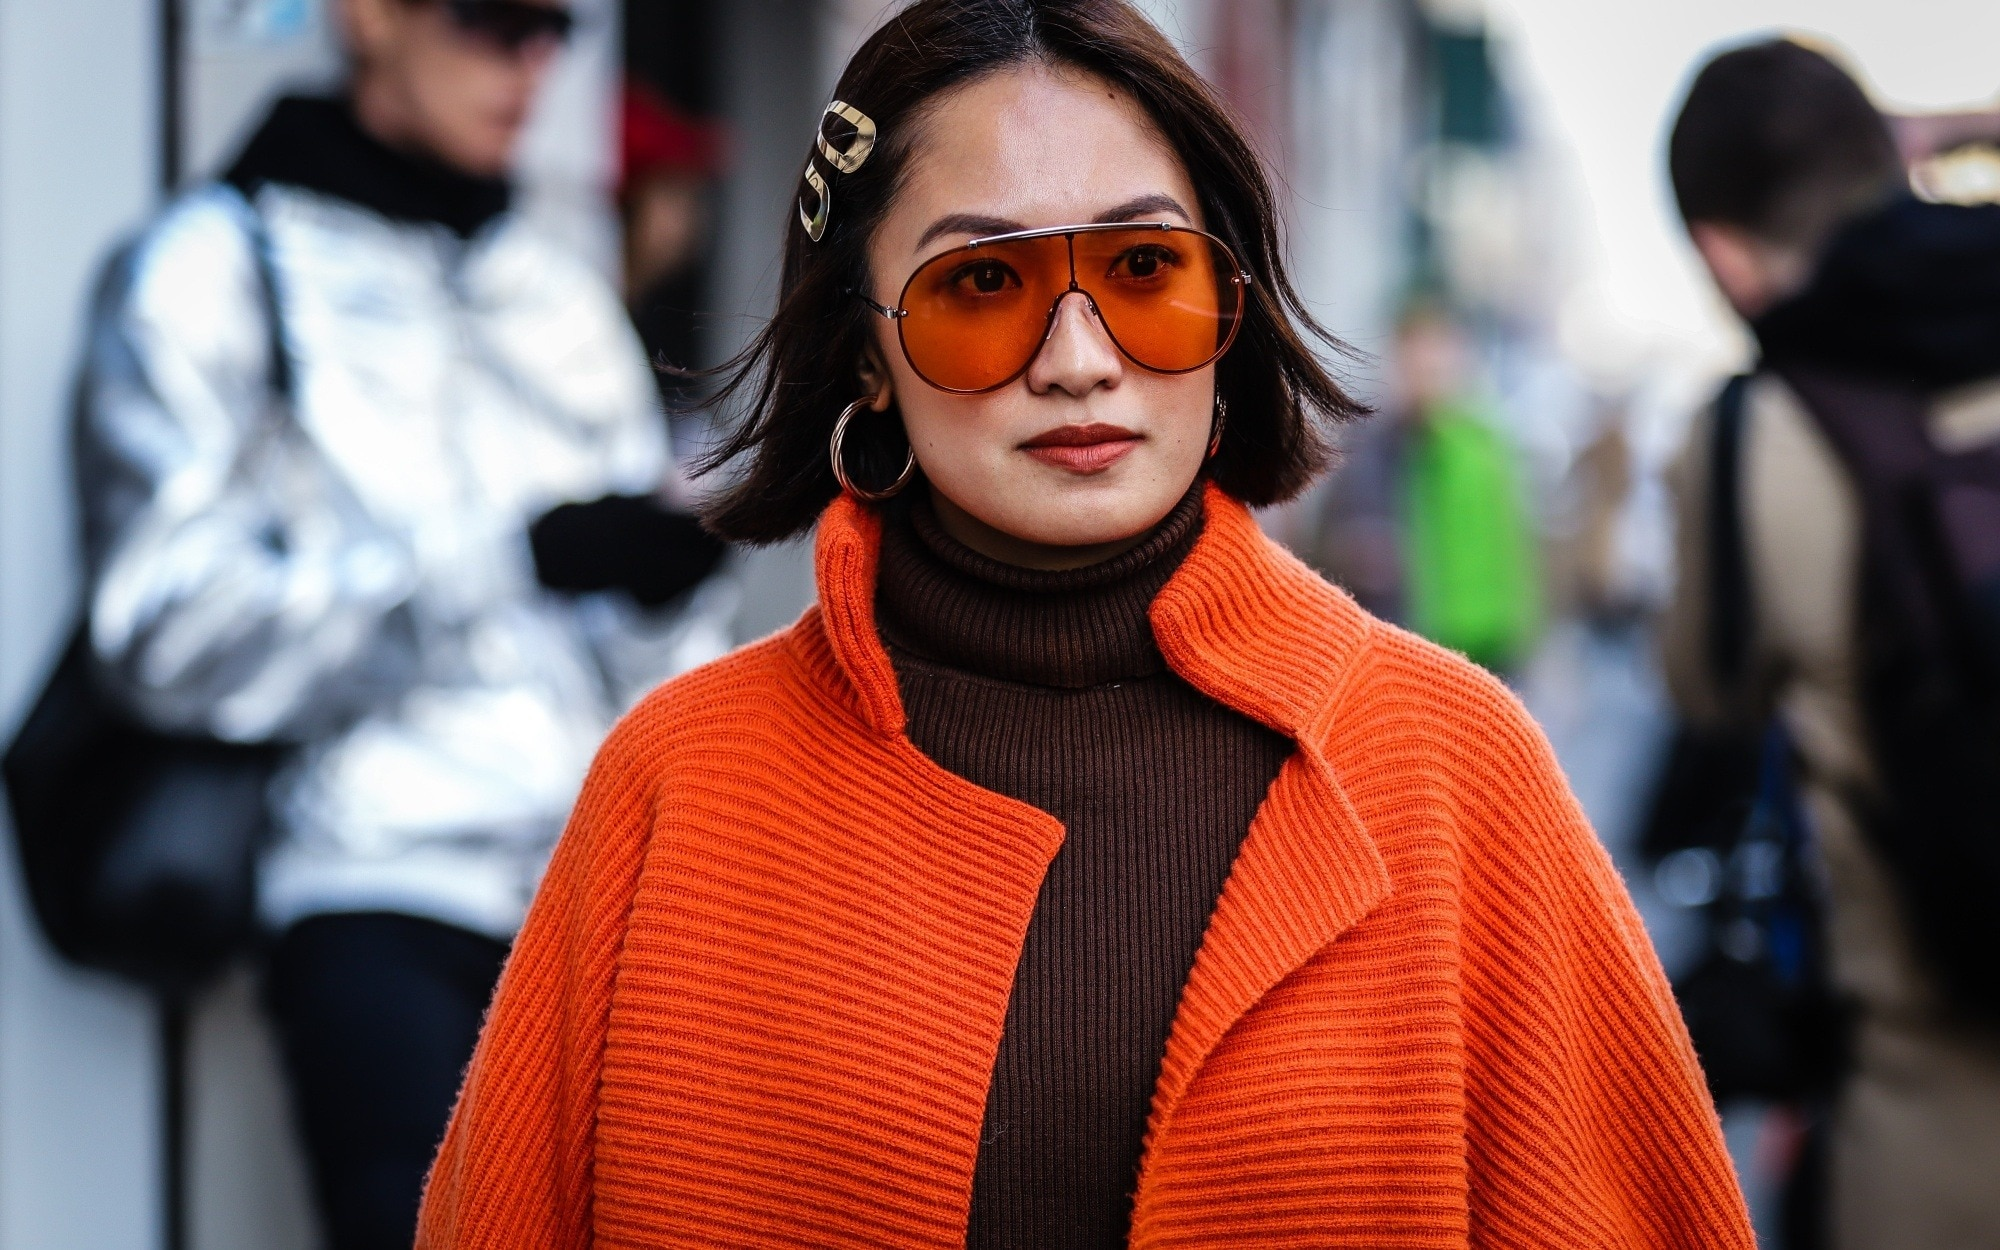 Laureen Uy wearing an orange coat and sunglasses with hair clips on her short hair